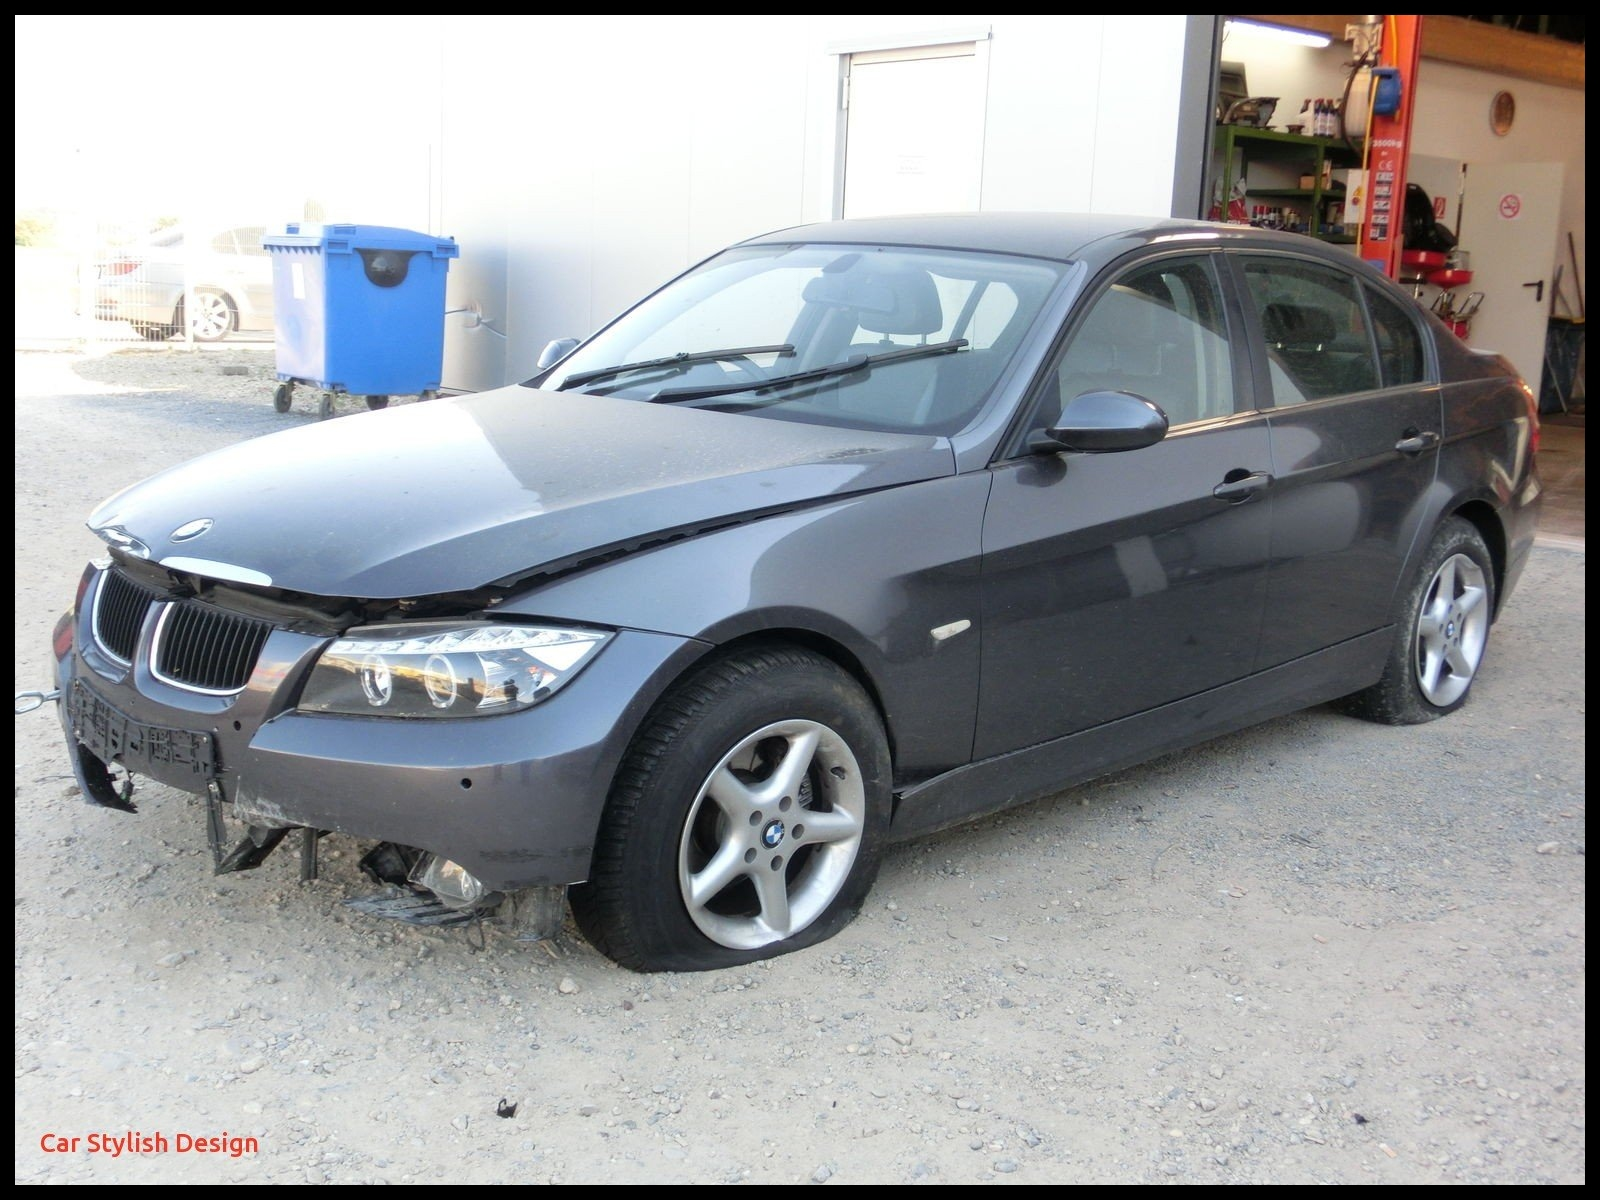 2001 Bmw 325i Luxury Used Bmw Instrument Clusters for Sale Page 35